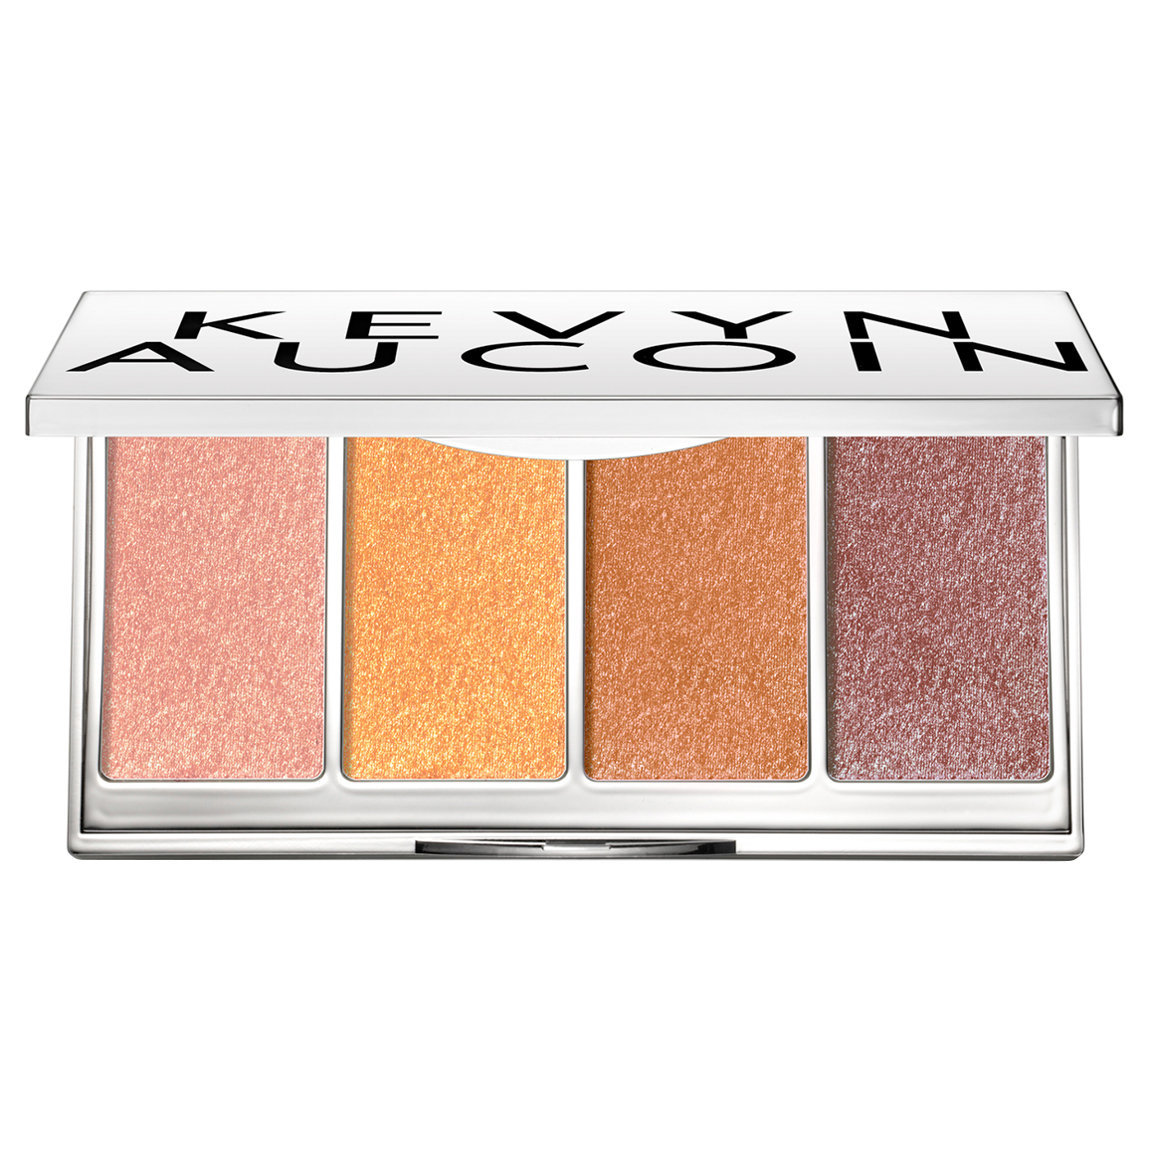 Kevyn Aucoin Kaleidochrome All Over Highlight Palette alternative view 1 - product swatch.